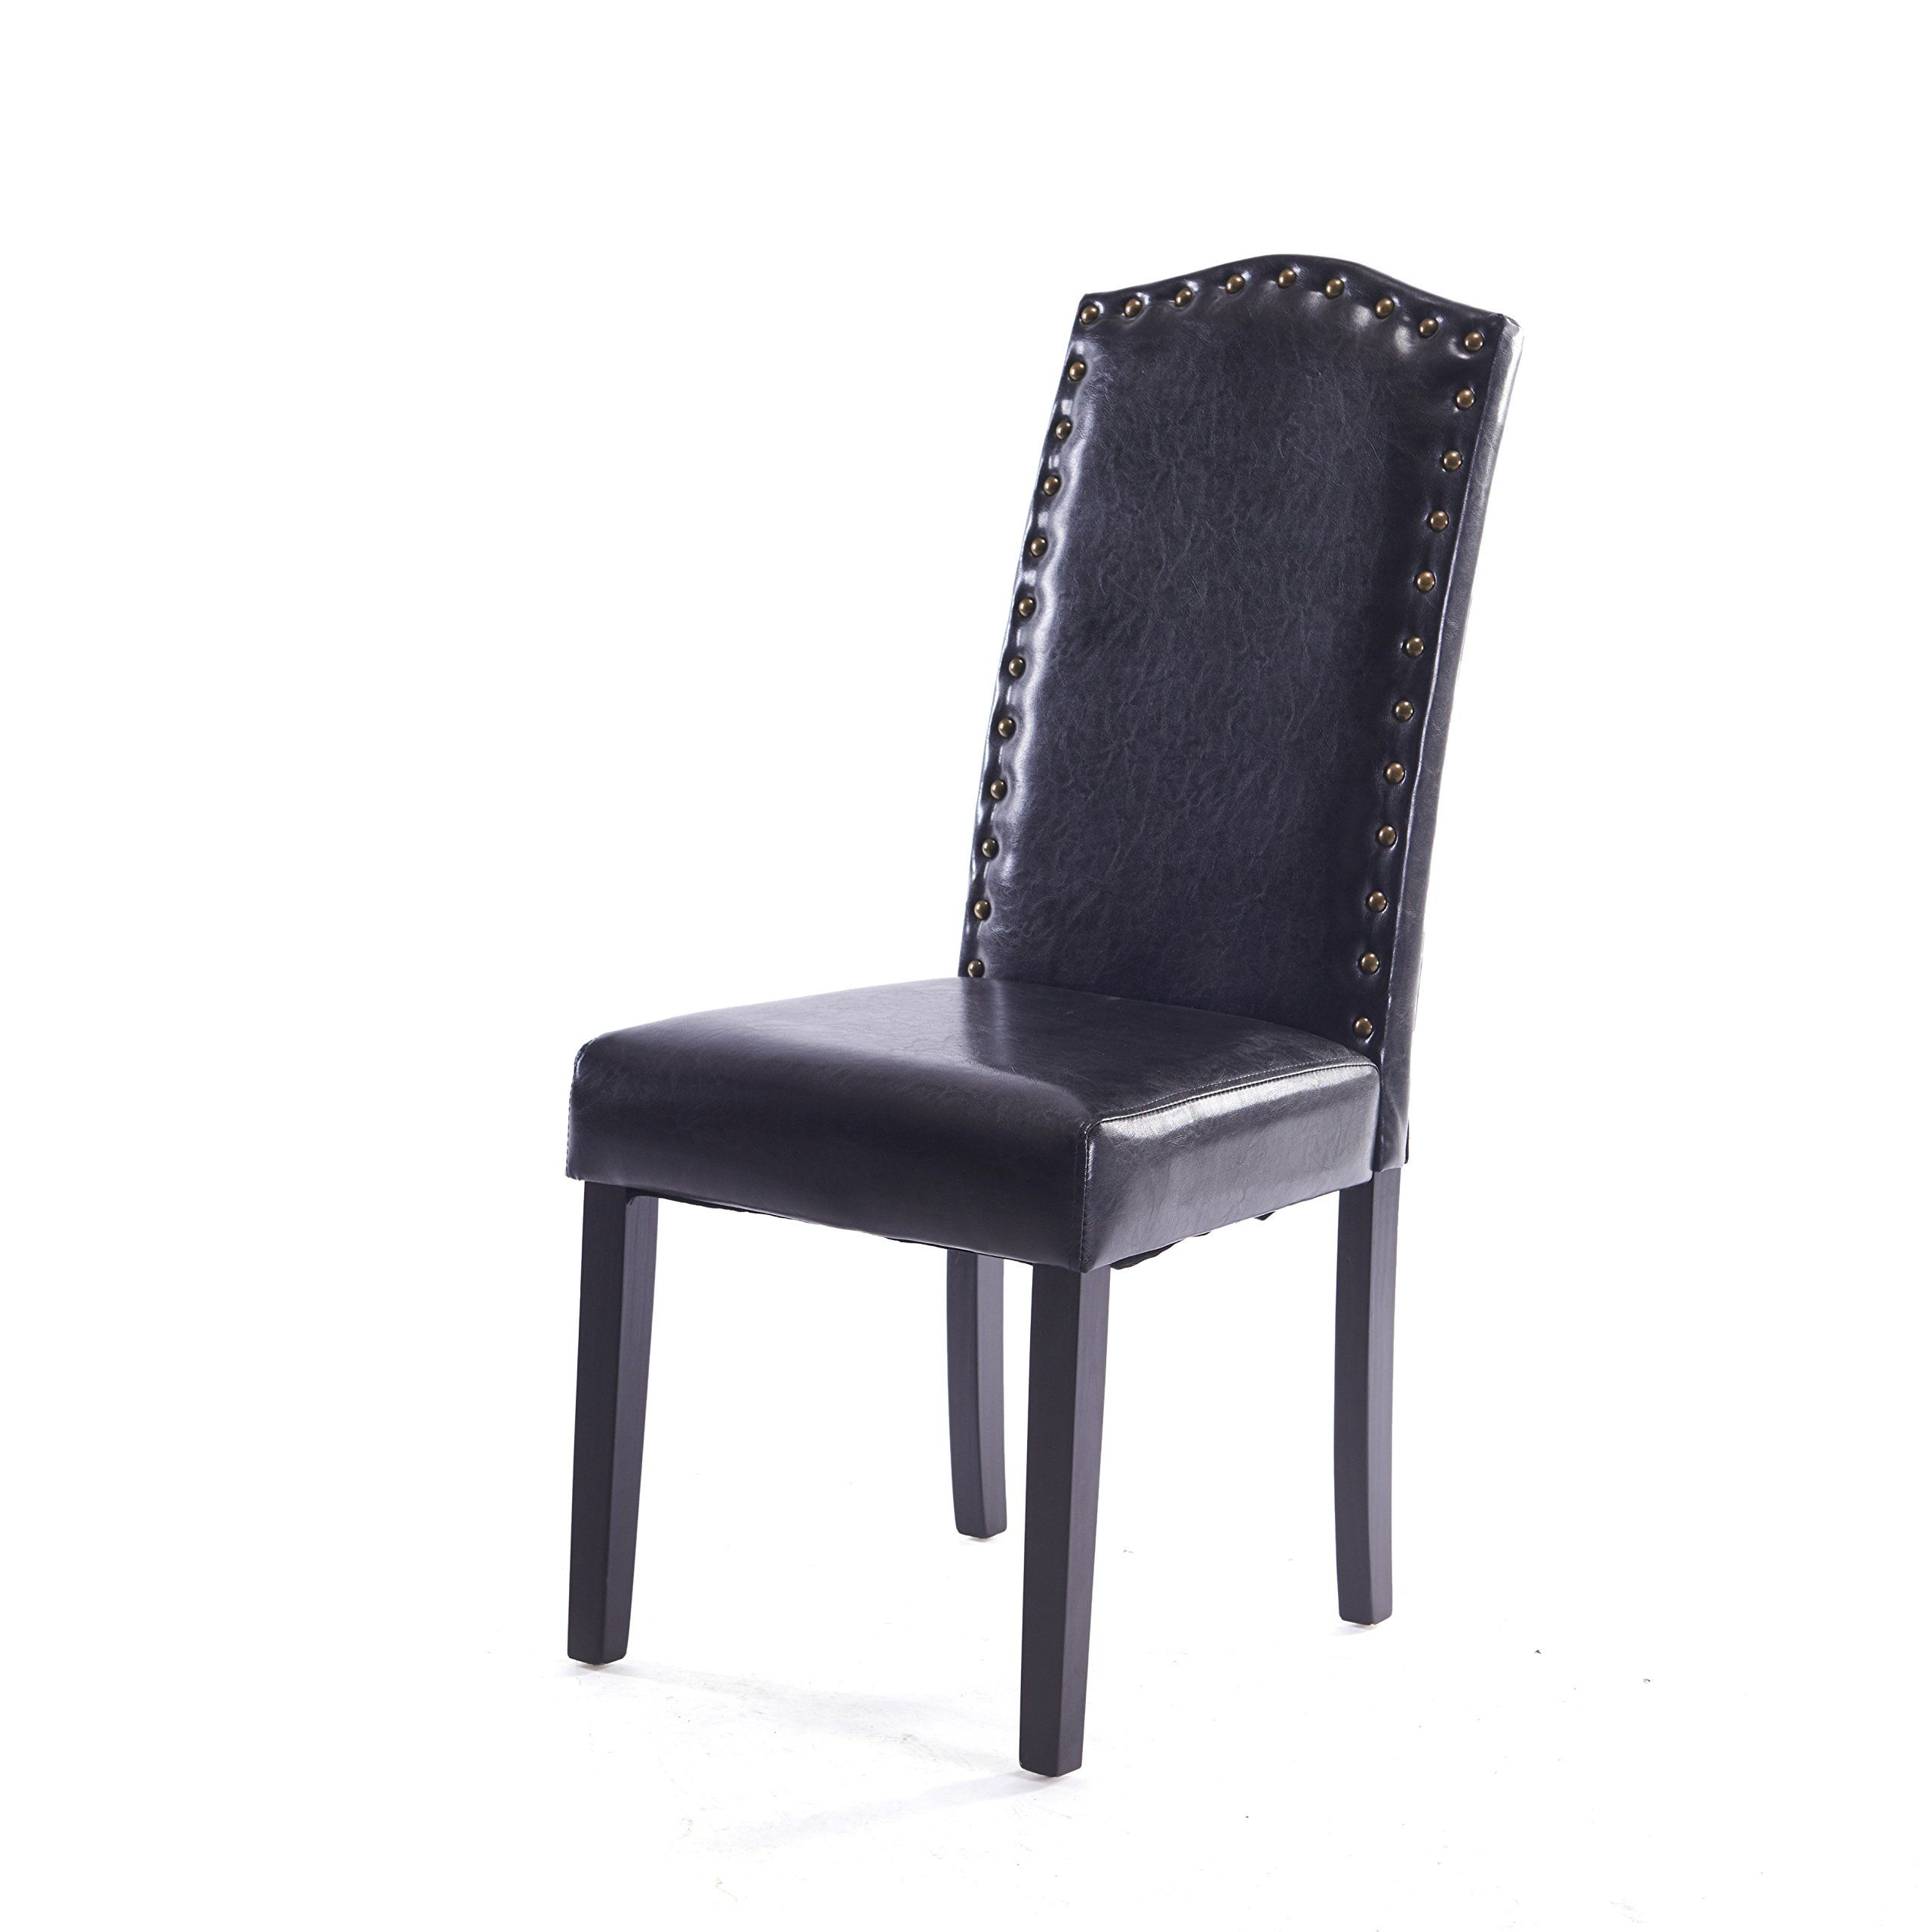 New Model style Comfortable Dining Chair in Home and Garden with